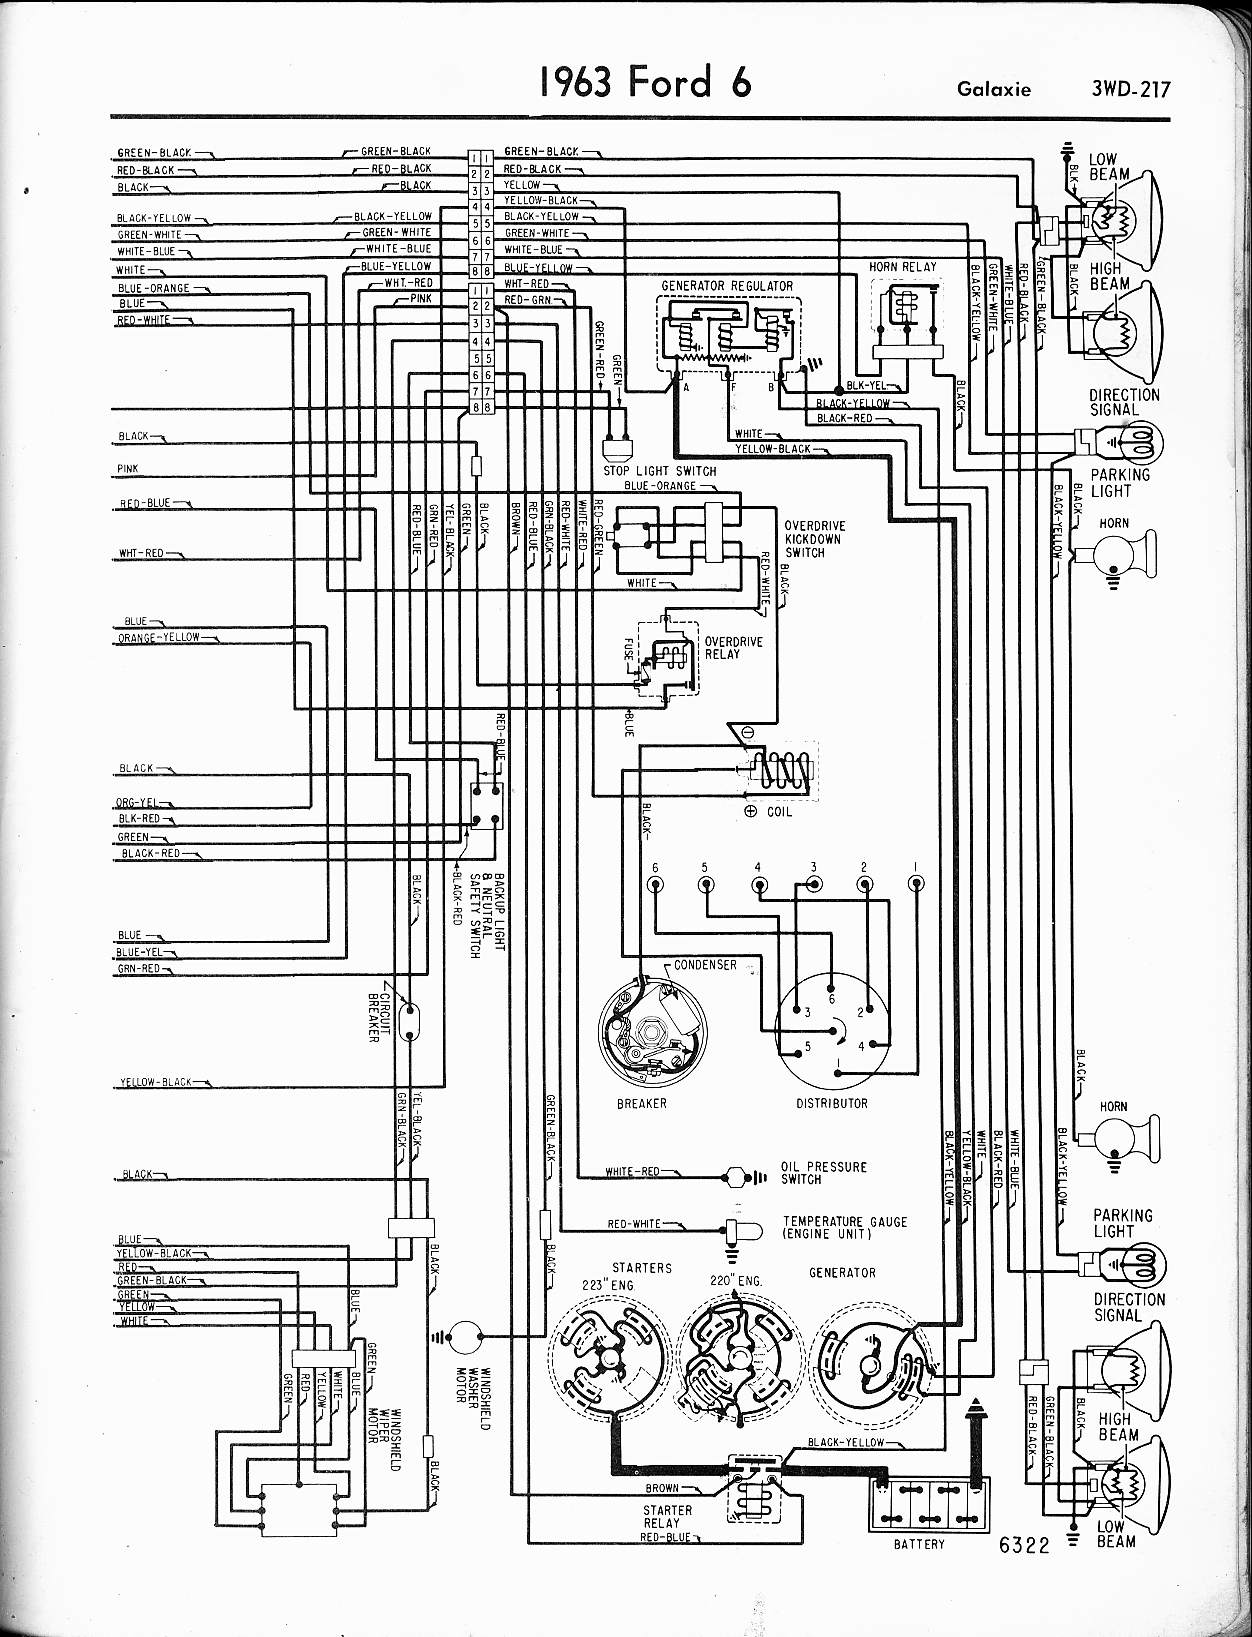 MWire5765 217?resize=665%2C869 62 galaxie underhood wiring diagram 62 wiring diagrams collection  at mifinder.co